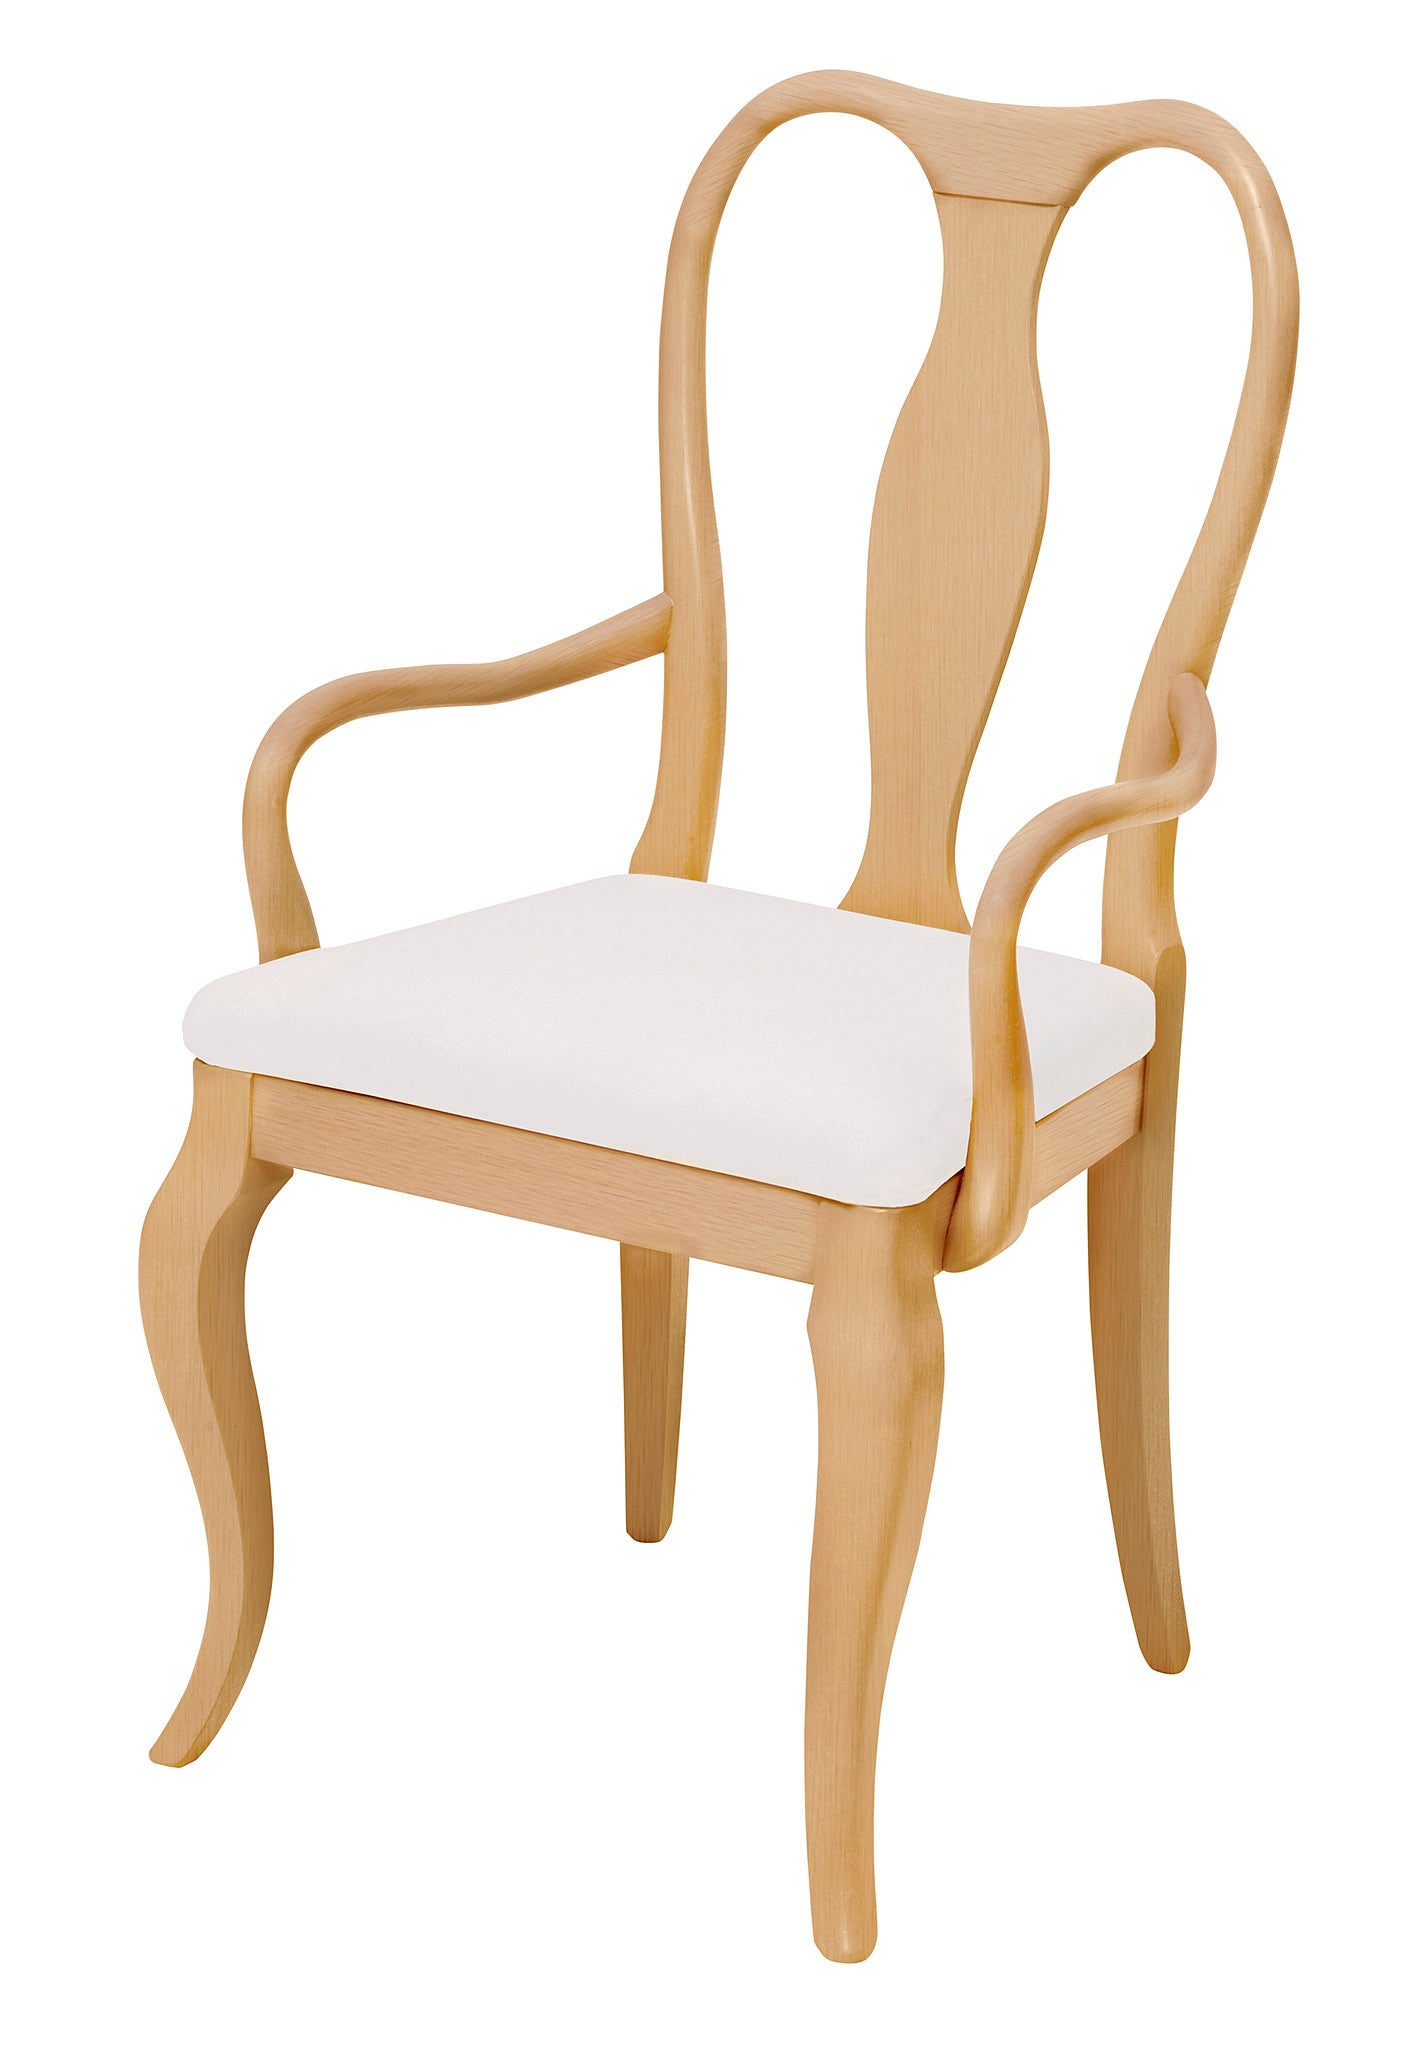 Fifi designer dining chair finished in natural wood and plain seat fabric.